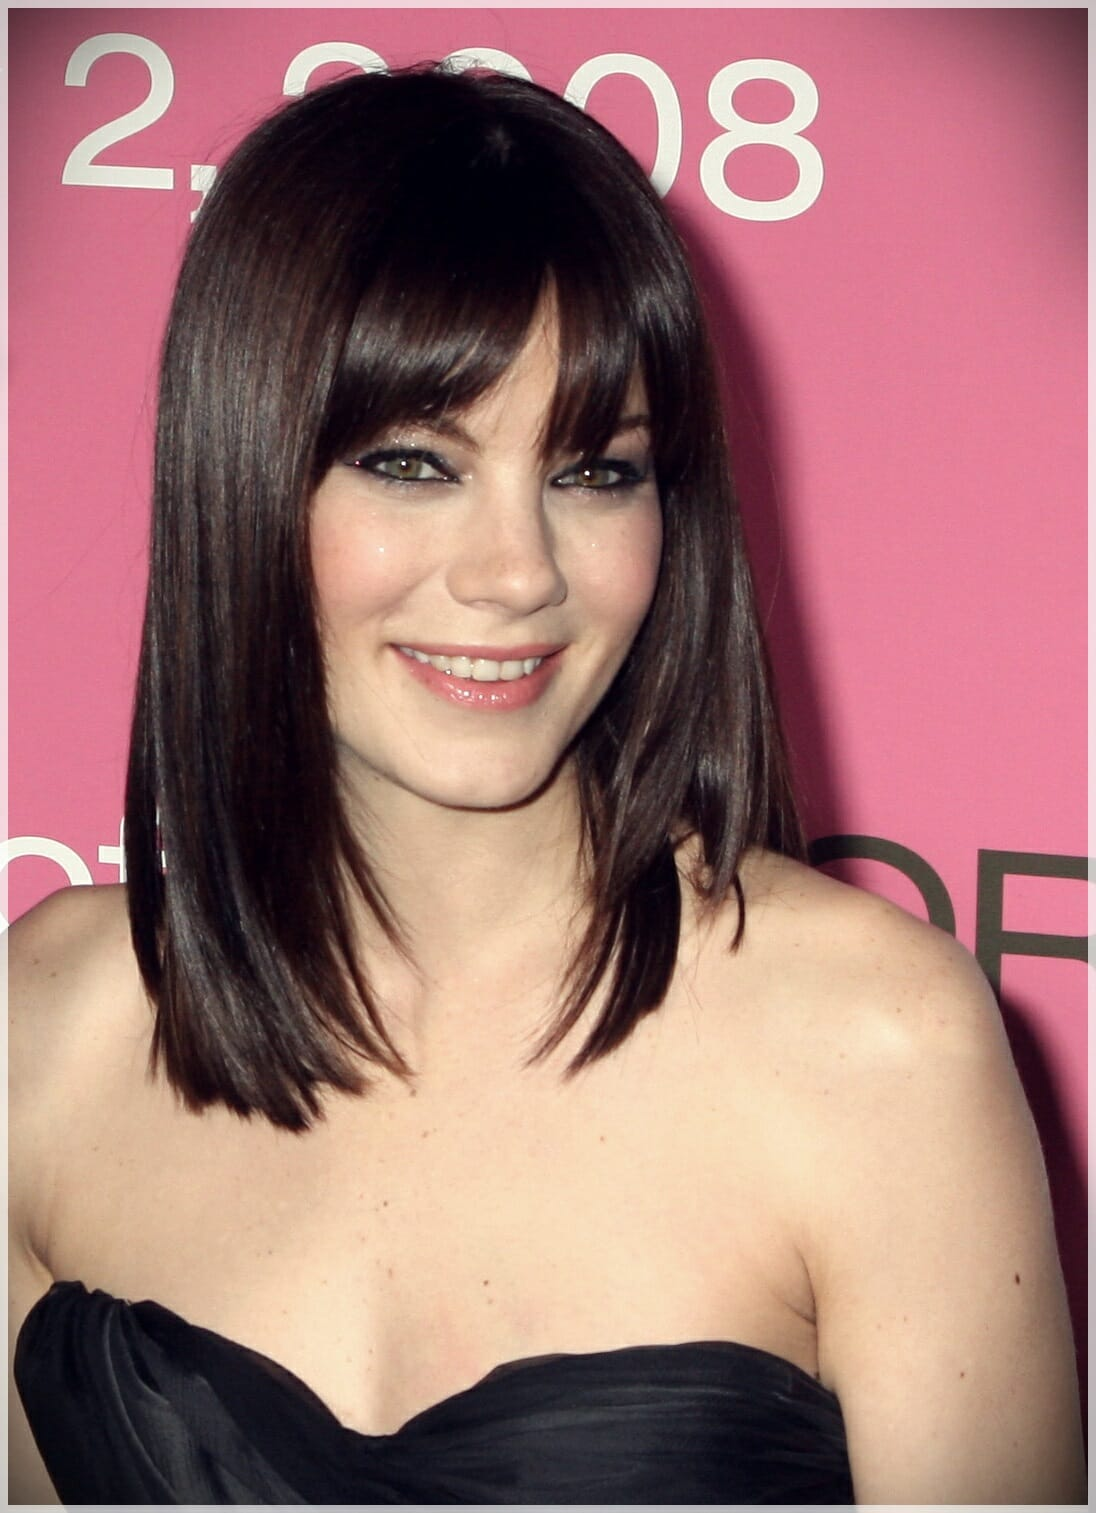 layered haircut with bangs 16 - Why getting bangs will never go out of fashion?